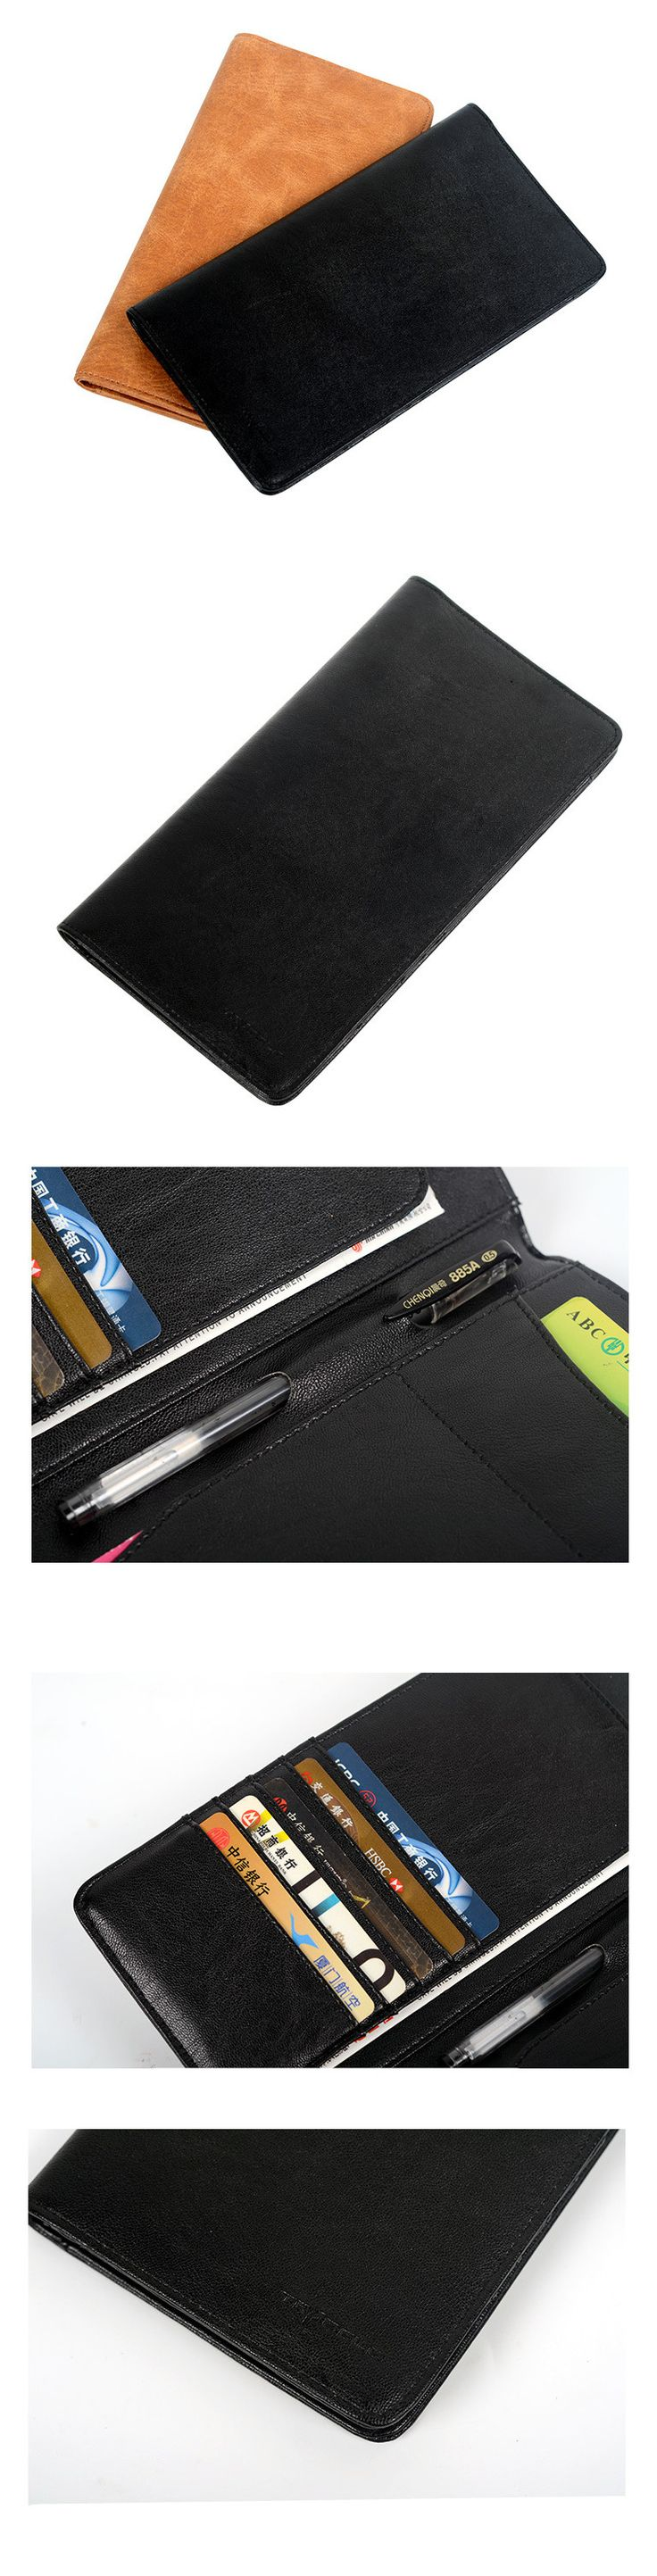 2018 hot men's passport cover for traveling documents, credit card holder for visiting cards and travel passport holder Wallet , https://myalphastore.com/products/2018-hot-mens-passport-cover-for-traveling-documents-credit-card-holder-for-visiting-cards-and-travel-passport-holder-wallet/,